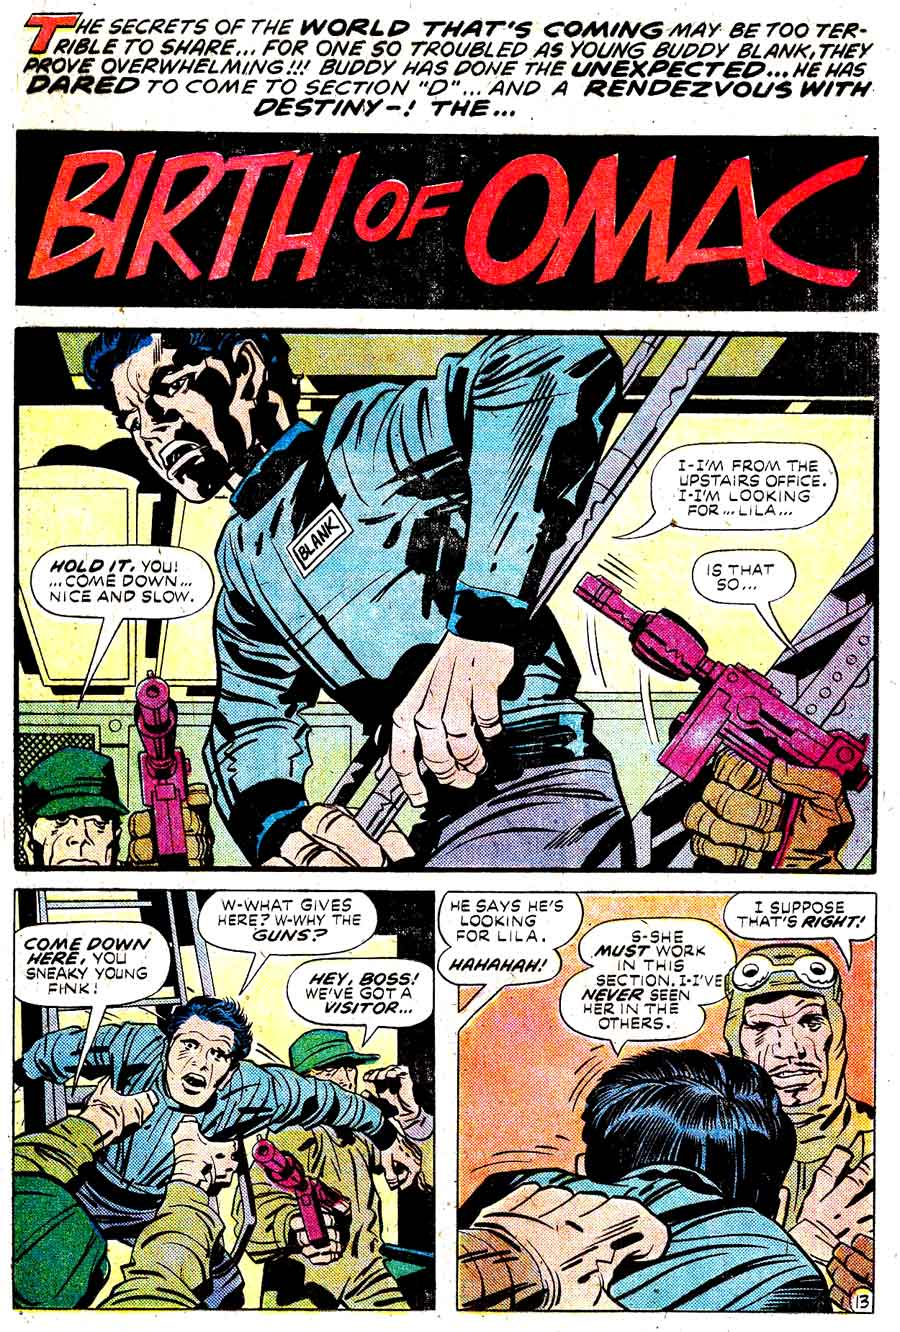 Omac v1 #1 dc bronze age comic book page art by Jack Kirby